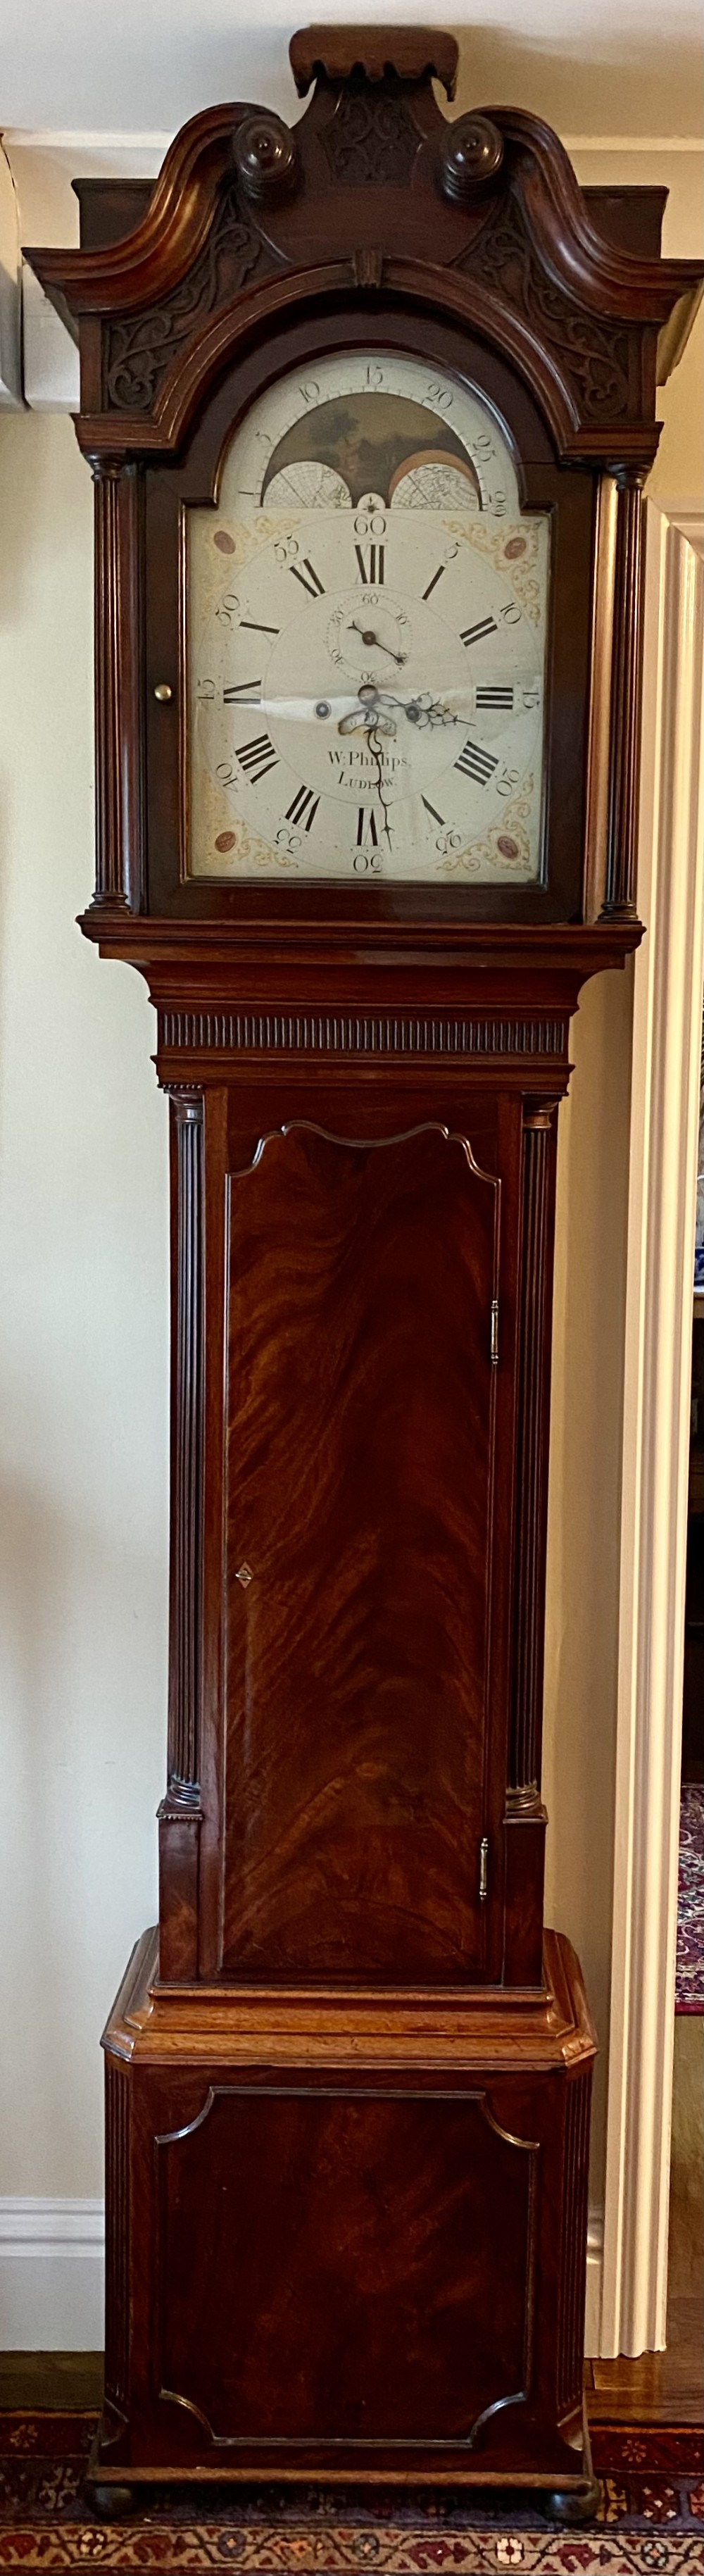 super quality 18th century 8 day mahogany longcase clock with rolling moon